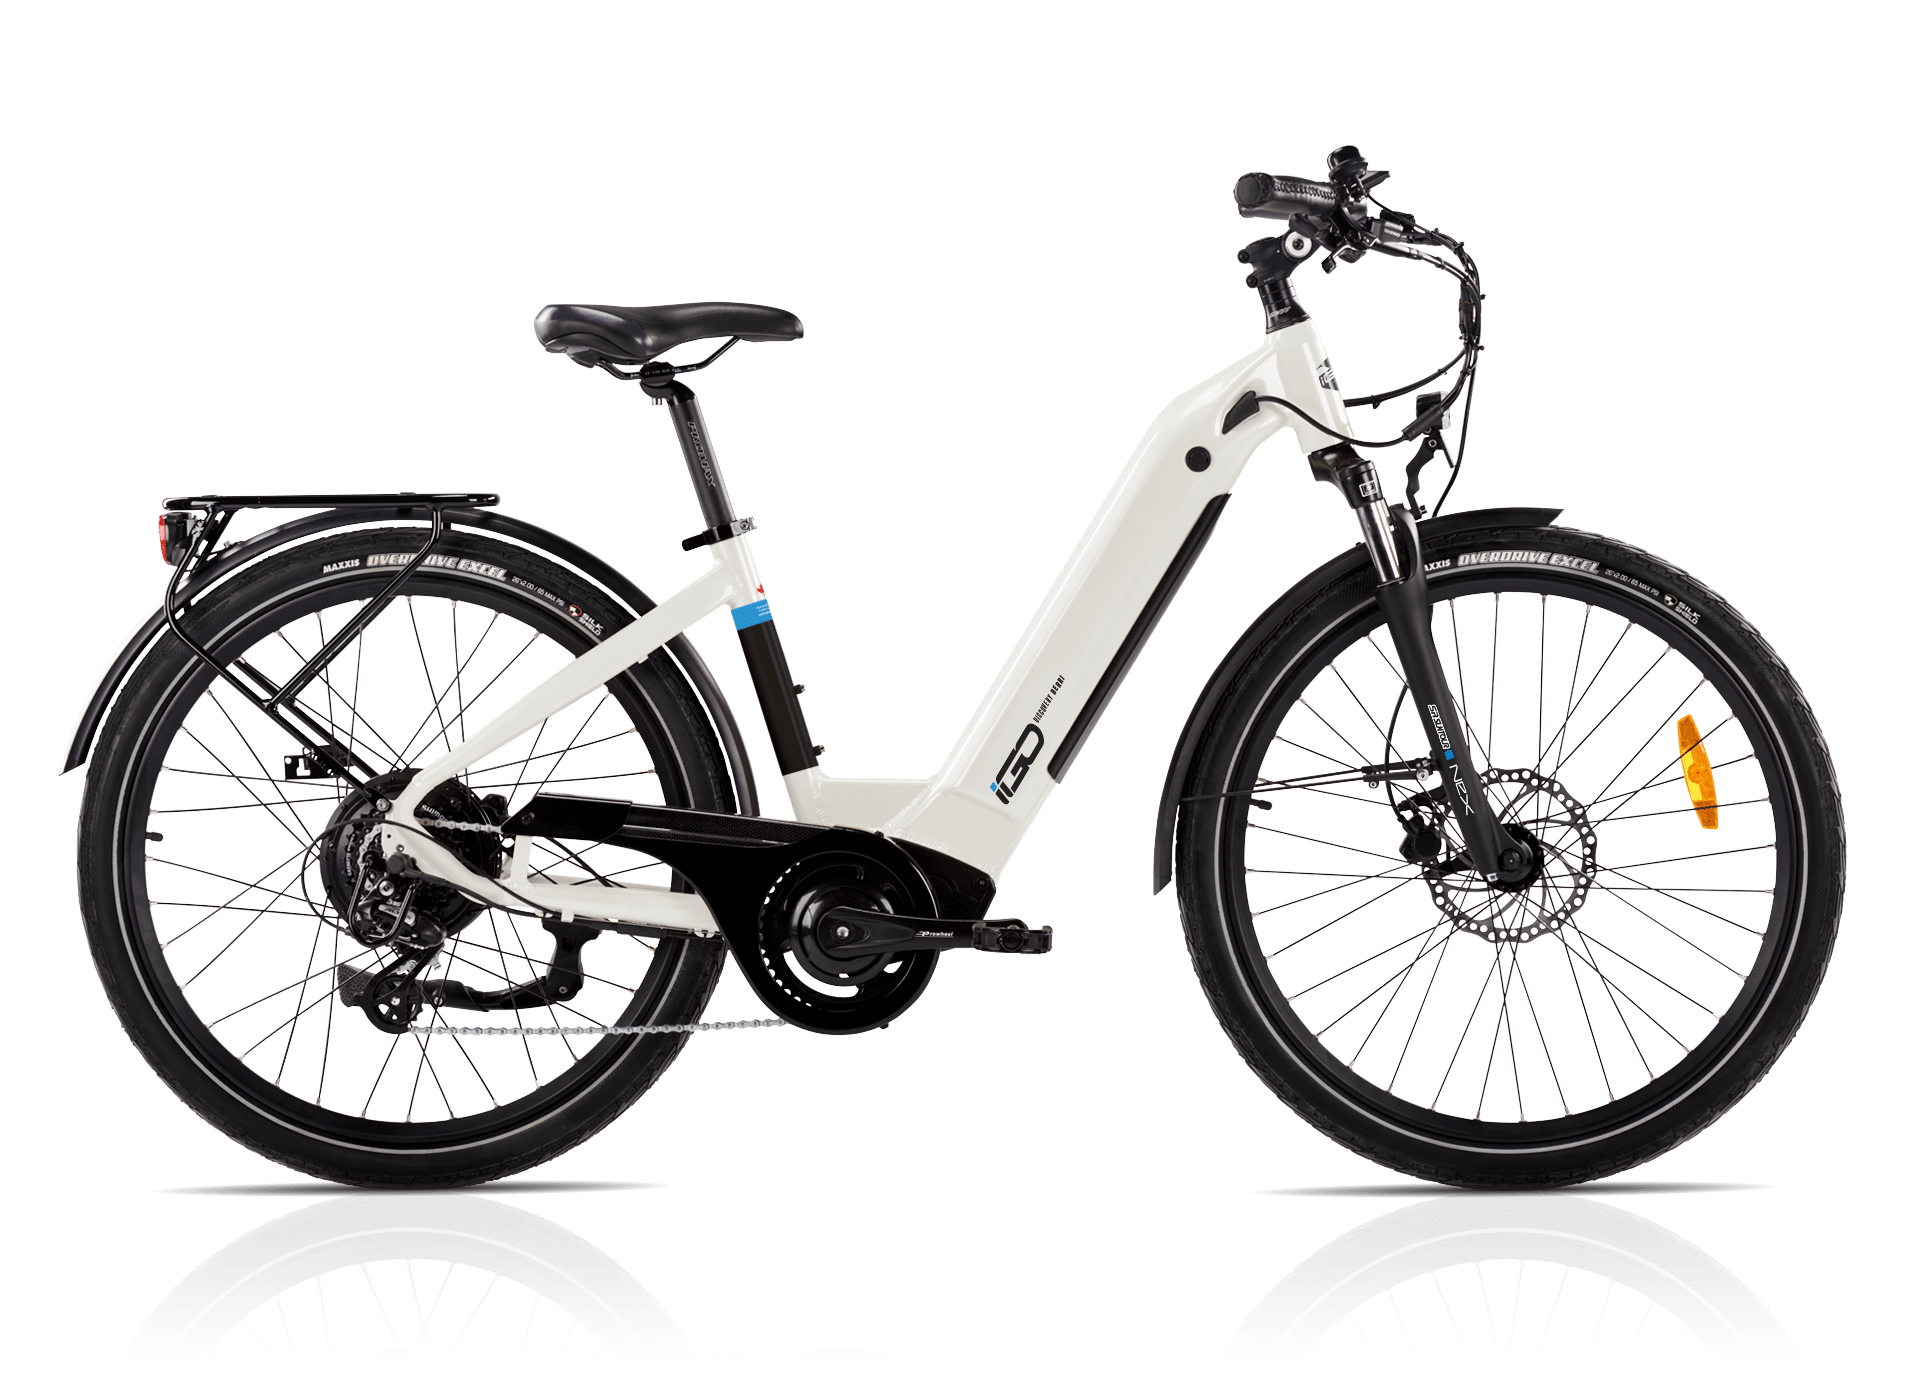 iGO Berrie 48 V 500 W Step Thru Electric Bicycle